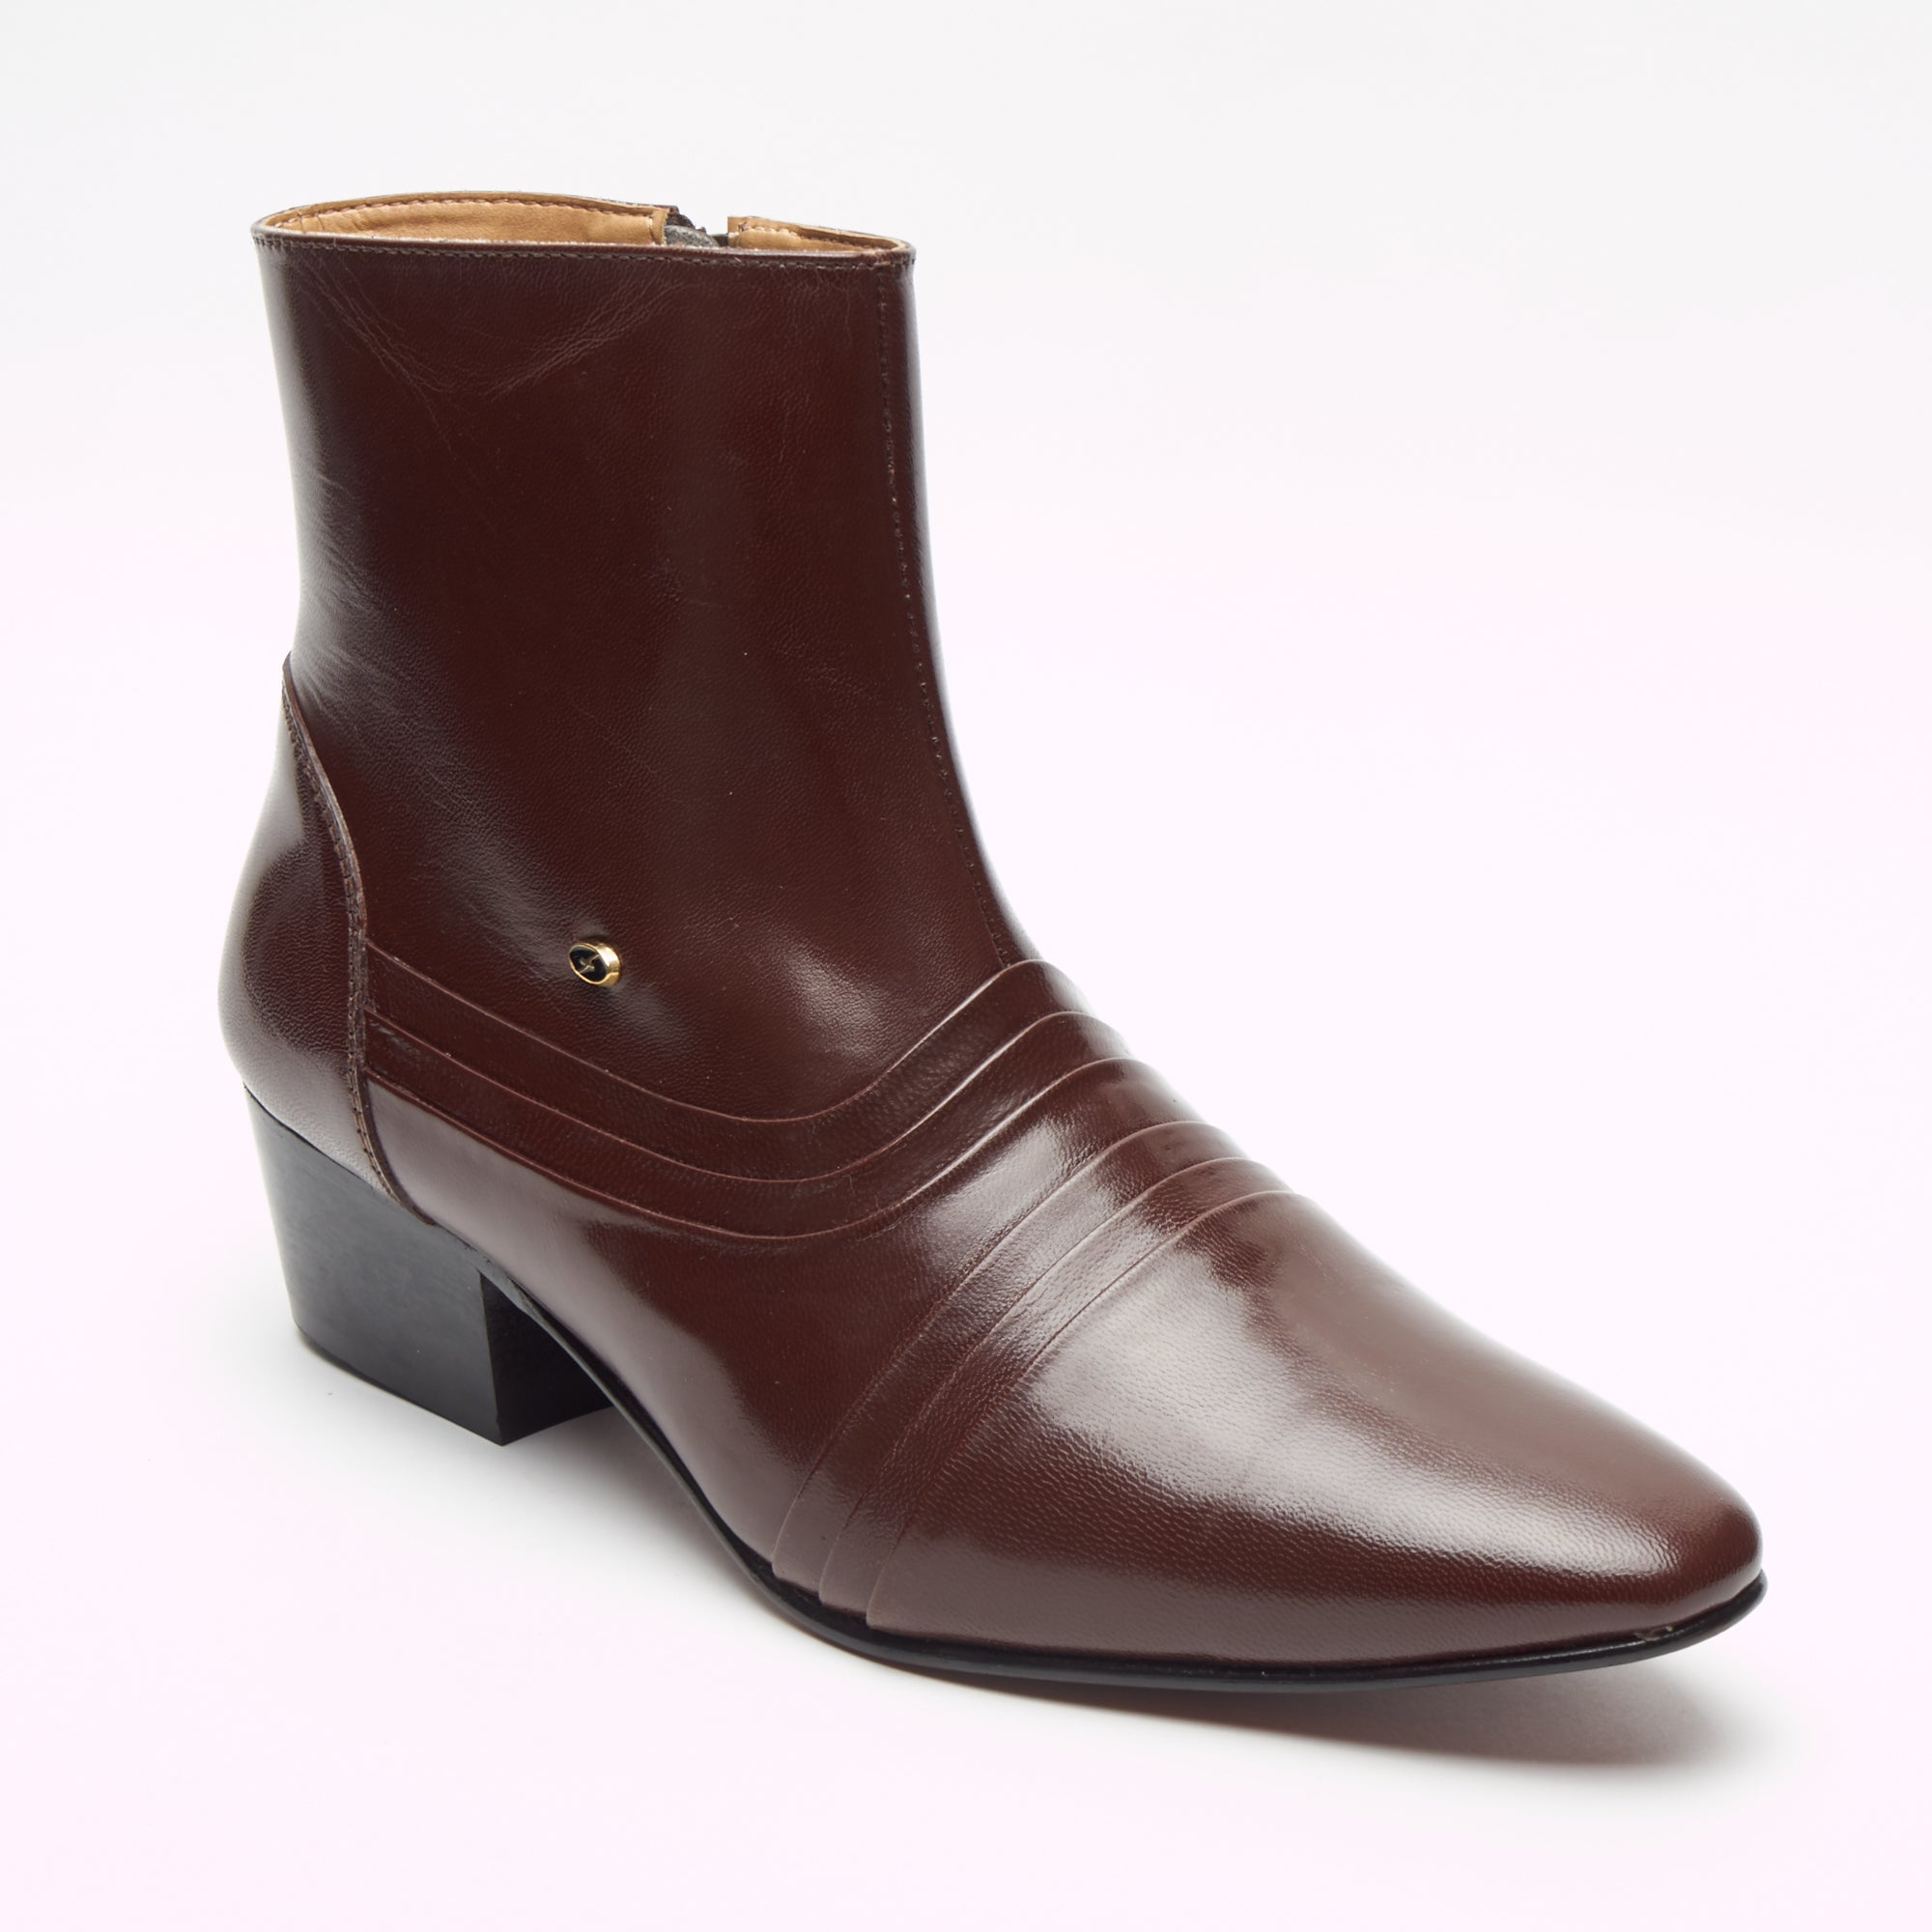 Mens Cuban Heel Leather Boots - 6006 Brown